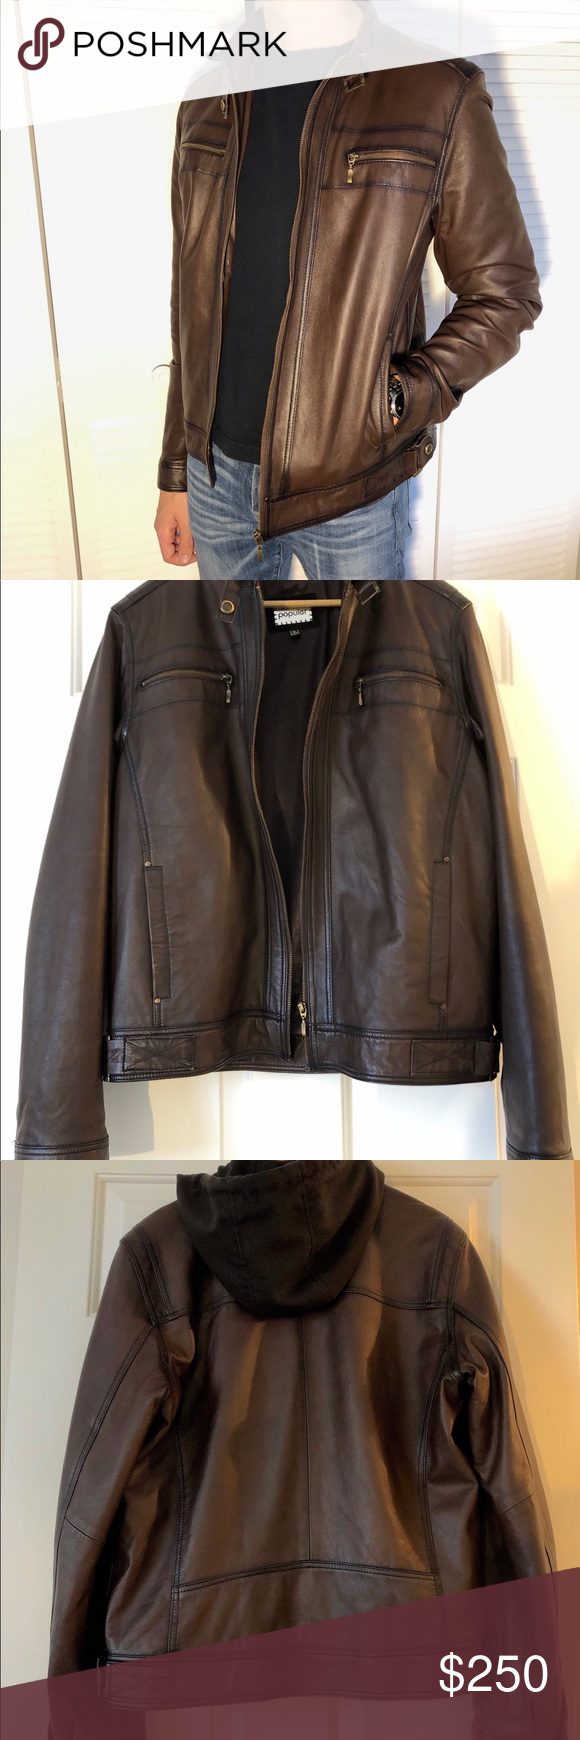 Efes Popular Turkish Genuine Lamb Leather Jacket The Leather Is Dark Brown With A Bit Of Darker Brown Patina Around Lamb Leather Jacket Leather Jacket Fashion [ 1740 x 580 Pixel ]